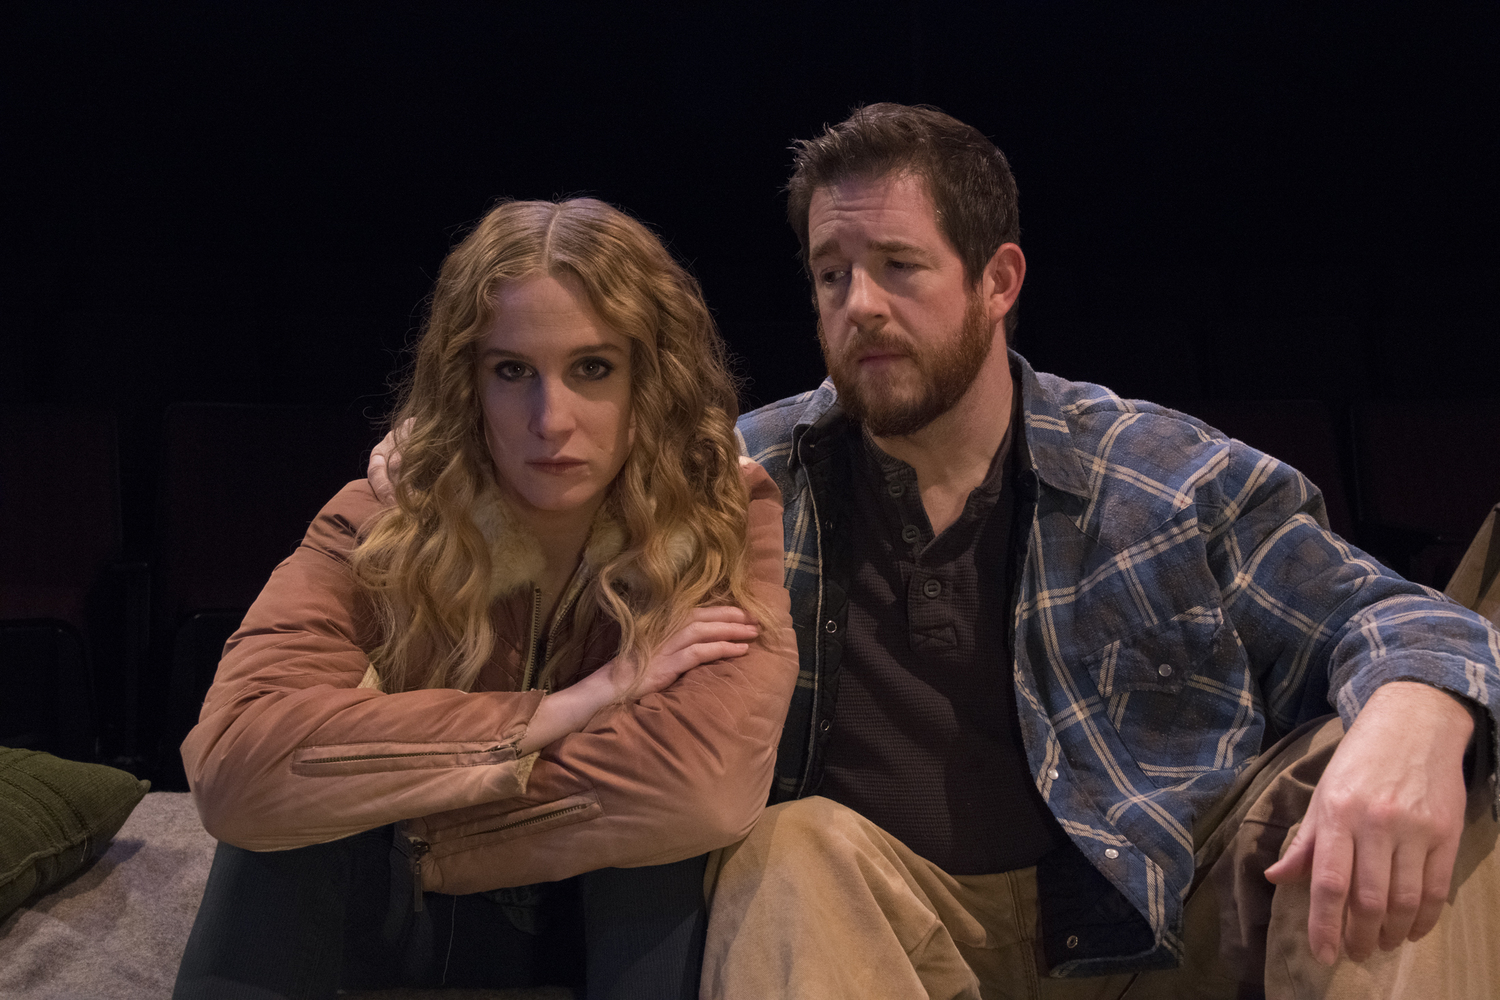 BWW Review: THE NIGHT ALIVE at Irish Classical Theatre